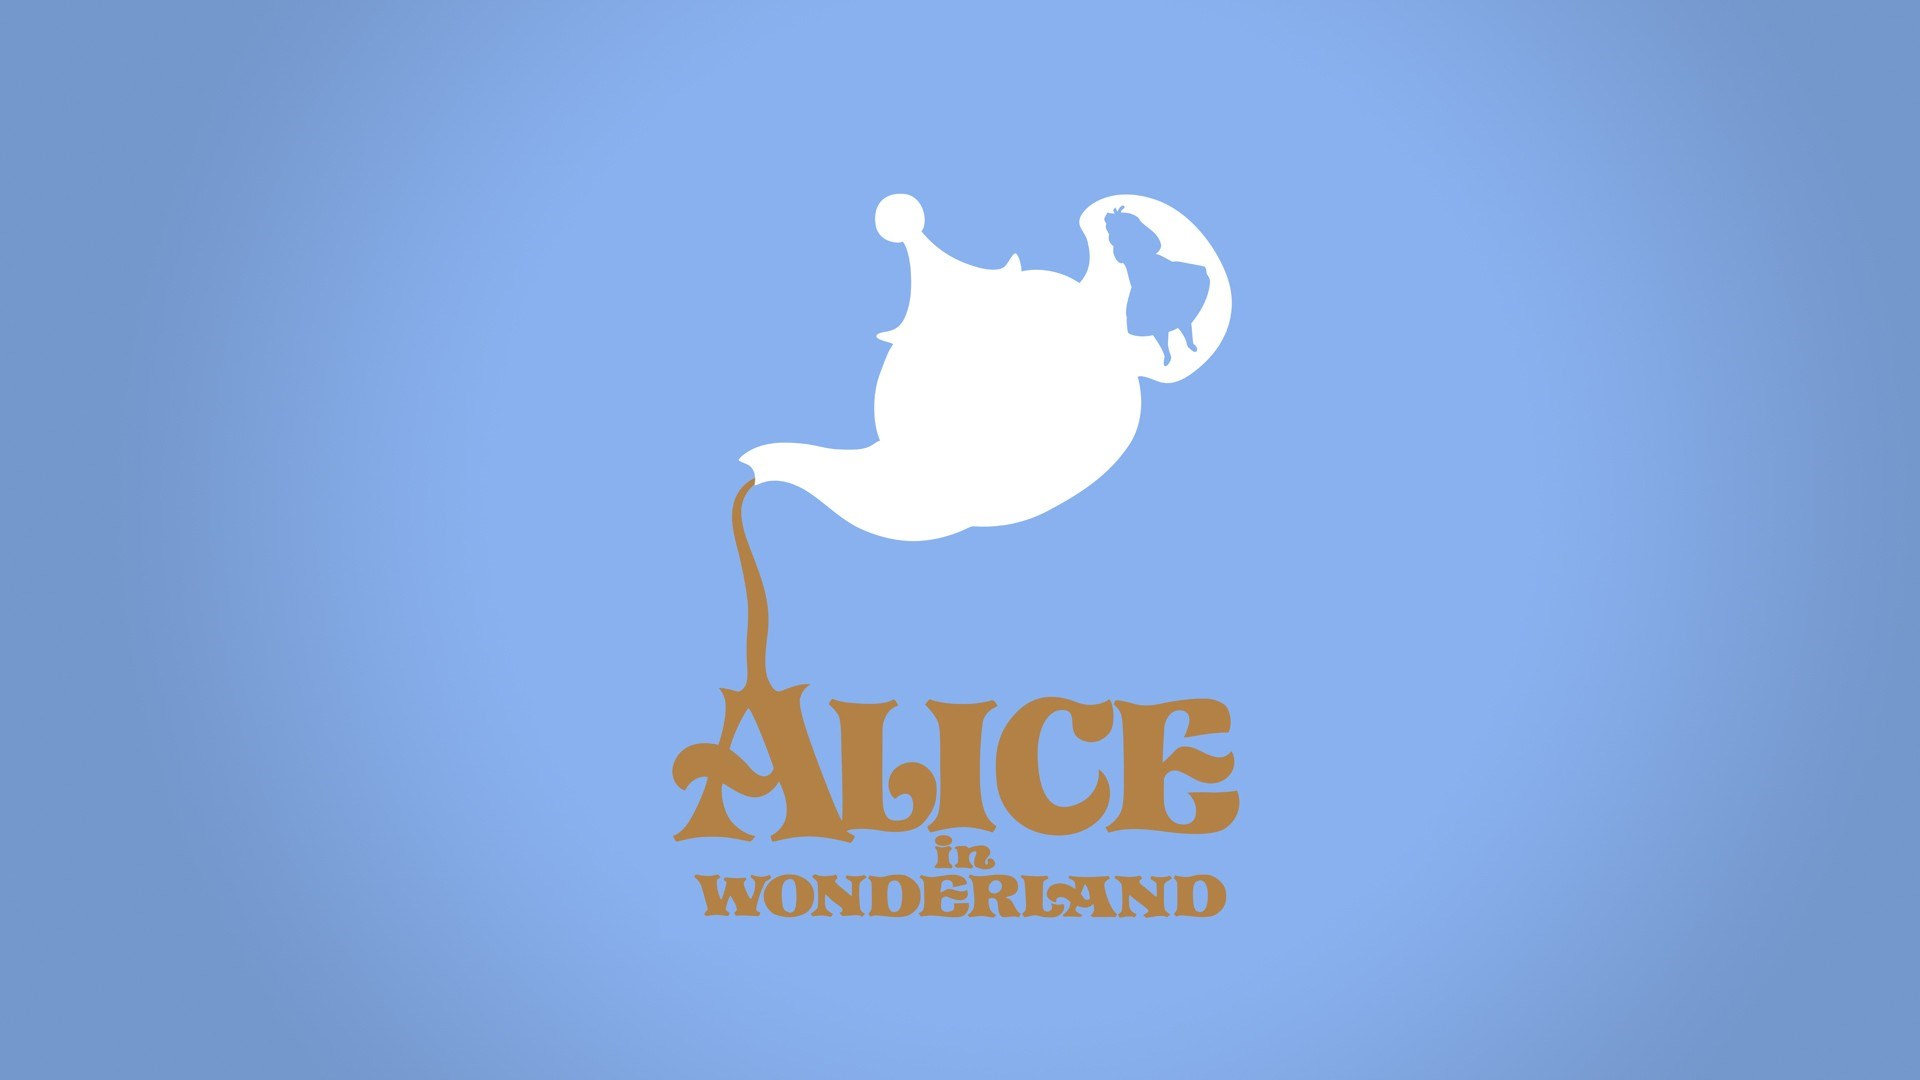 alice-in-wonderland-Google-pretra%C5%BEivanje-wallpaper-wpc9202267